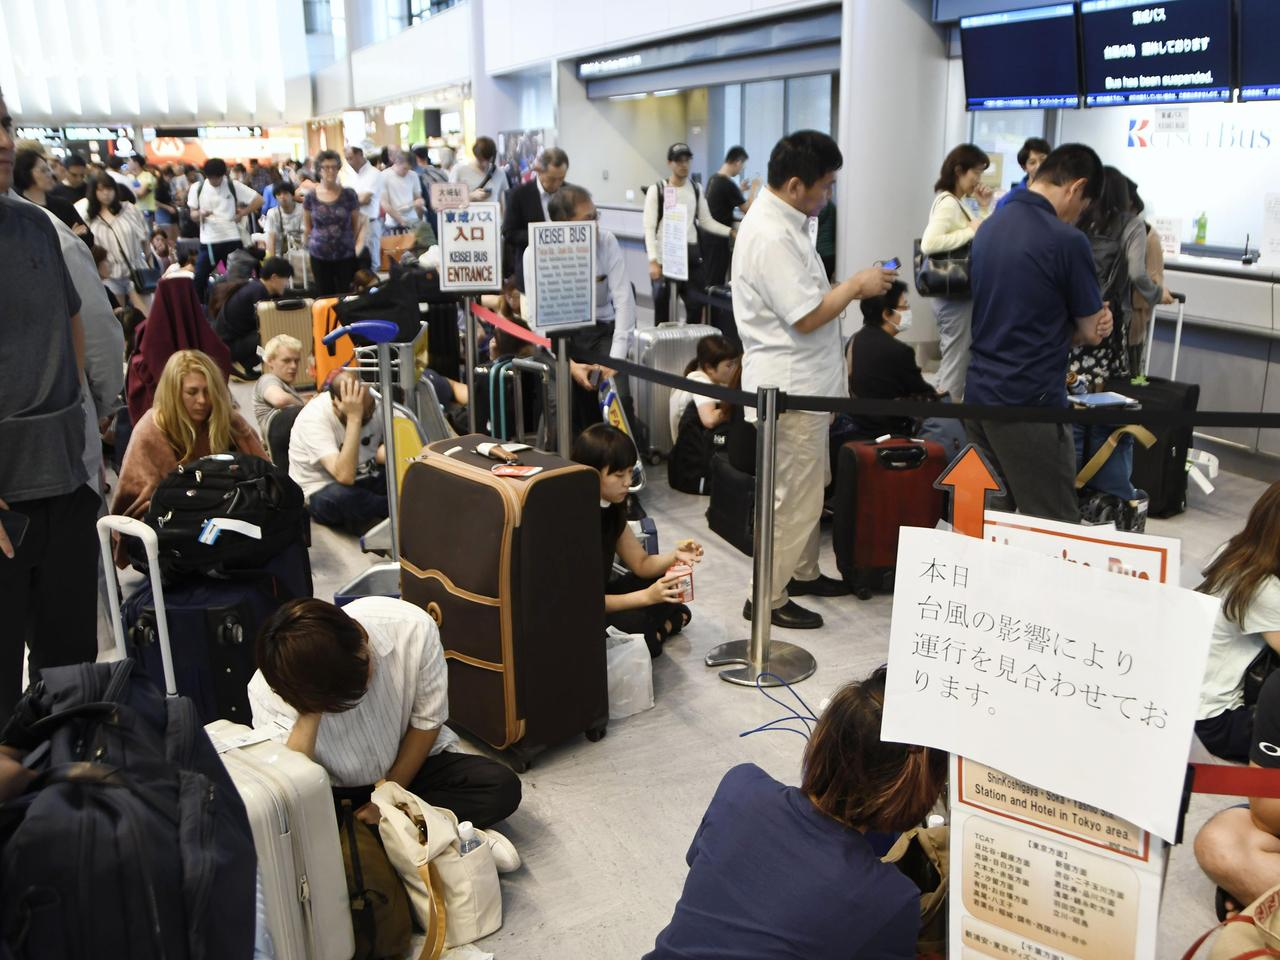 Travelers are stranded at Narita airport in Narita, near Tokyo Monday, Sept. 9, 2019 as railways and subway operators suspended services following a typhoon. Typhoon Faxai blew across the Tokyo metropolitan area Monday morning, causing dozens of injuries, while disrupting rush-hour travel and knocking out power. (Kyodo News via AP)